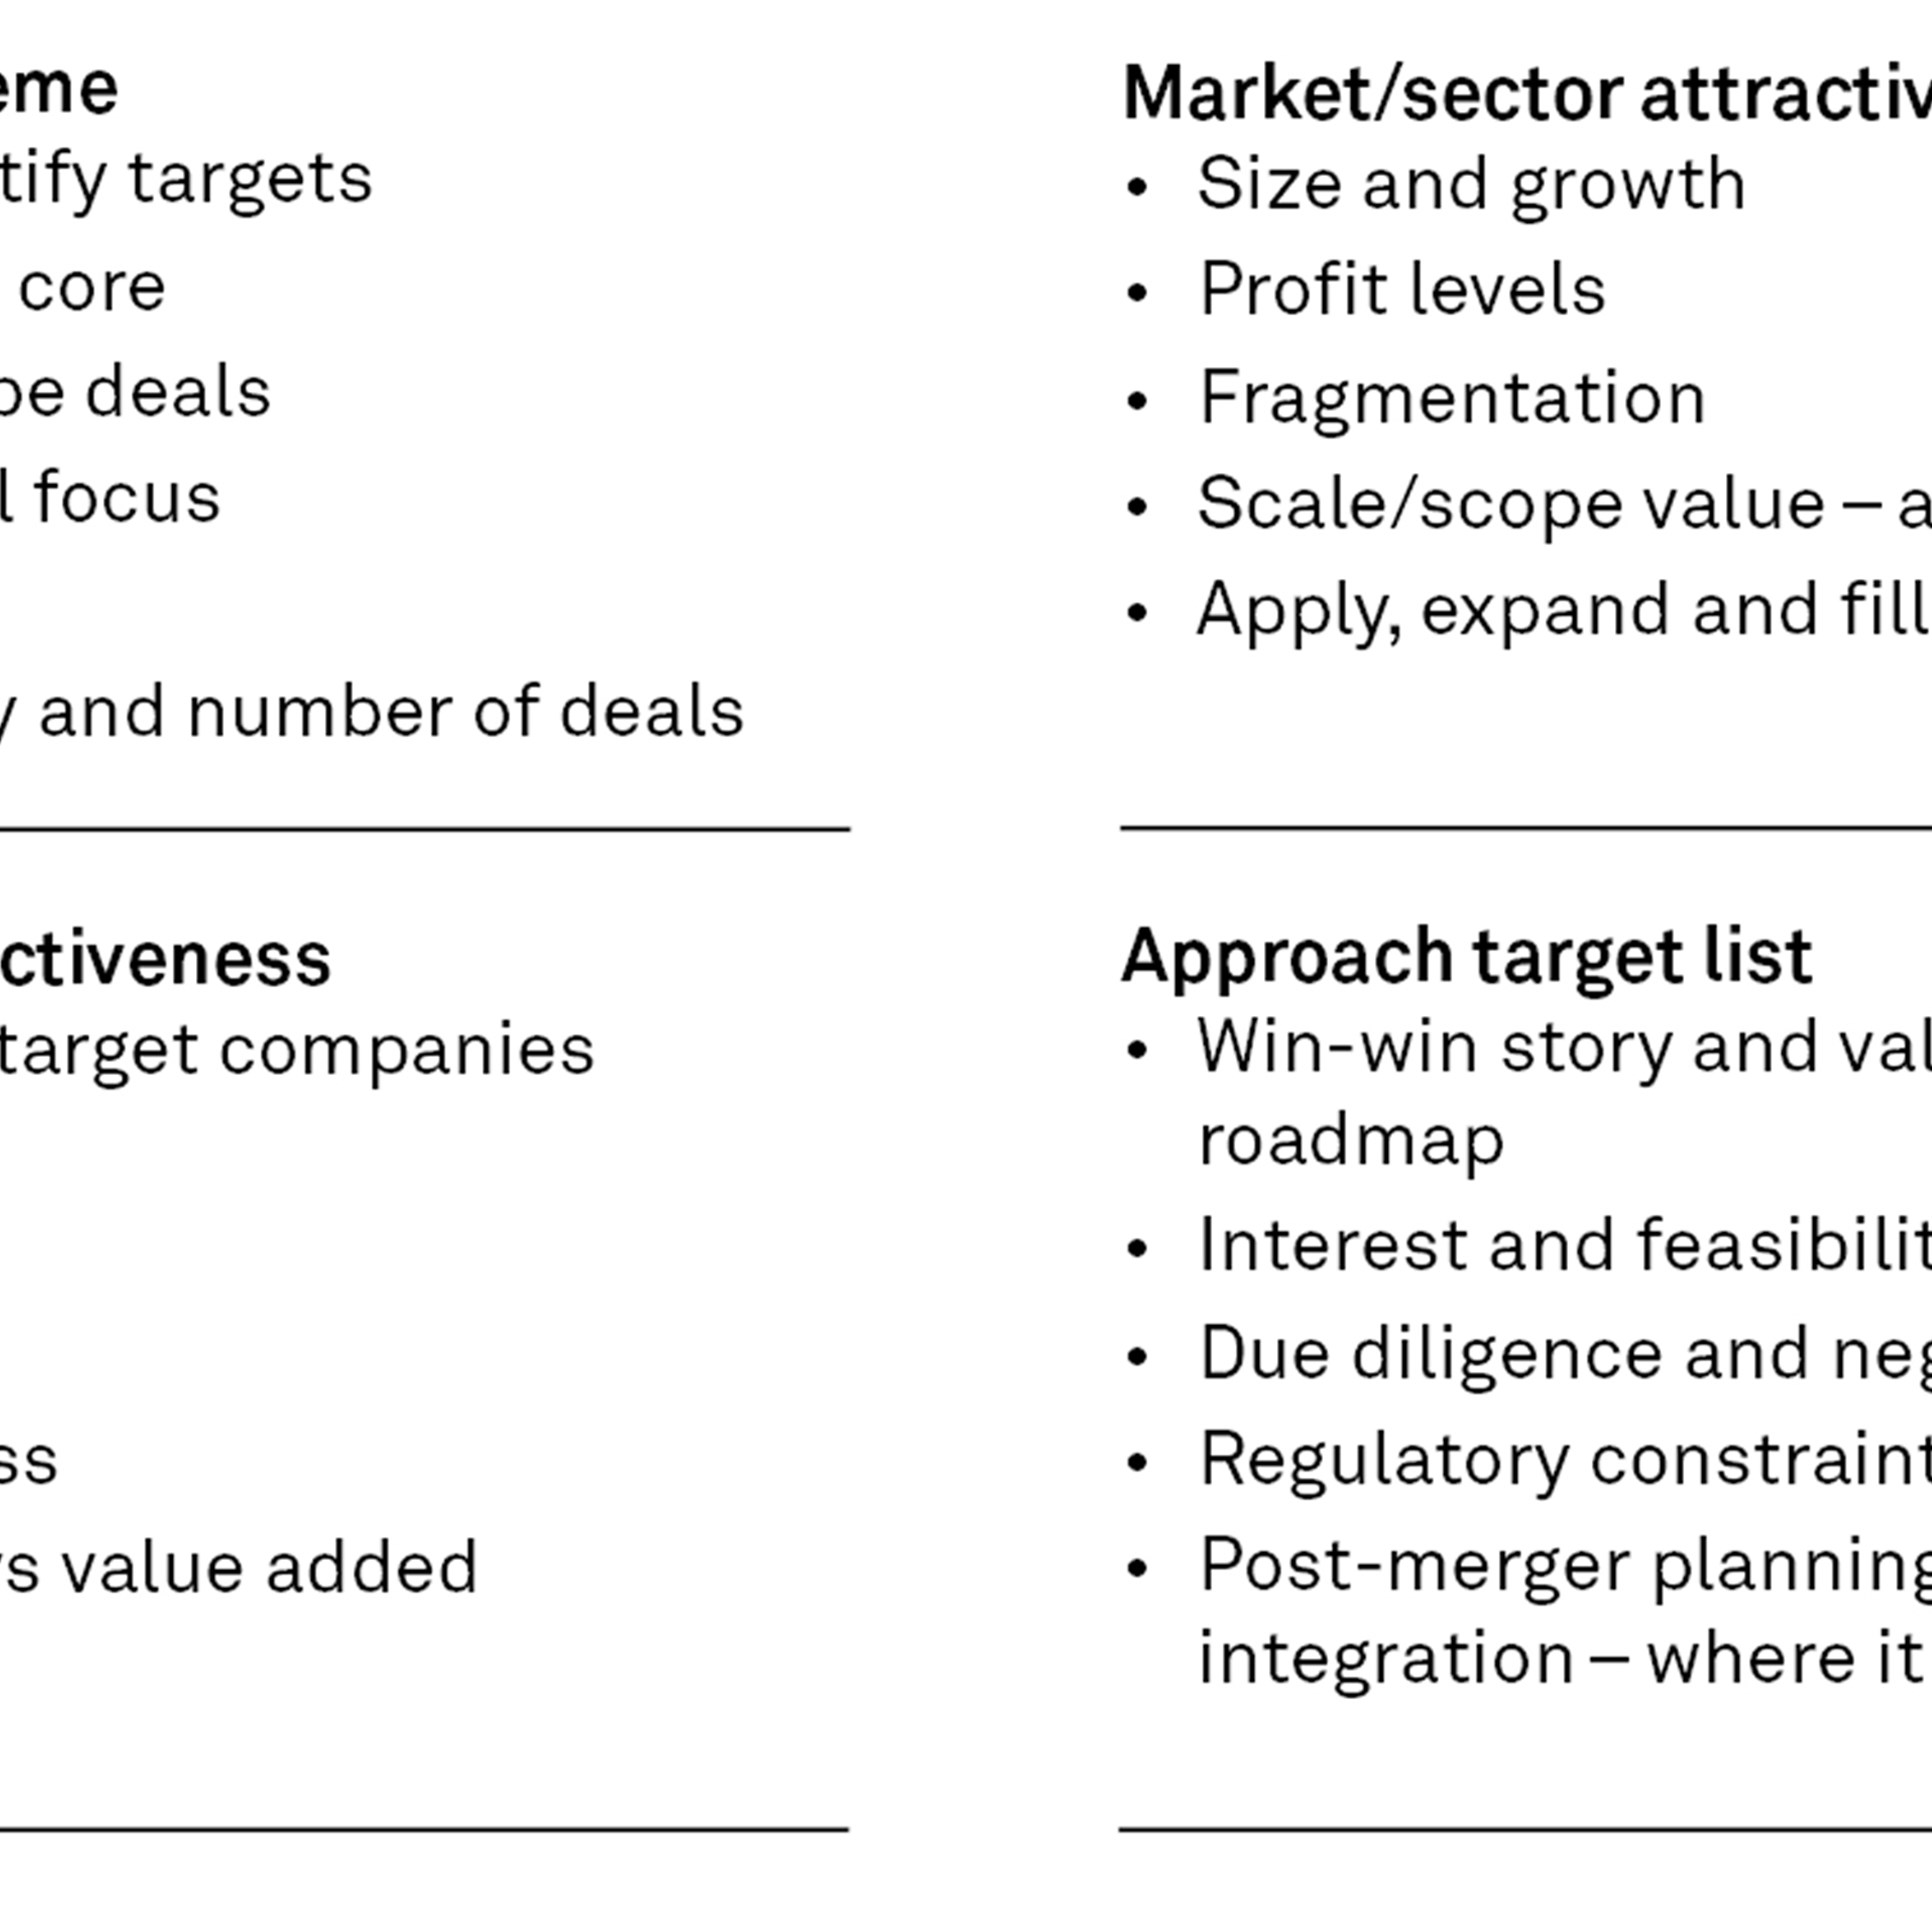 A practical mergers and acquisitions guide for general